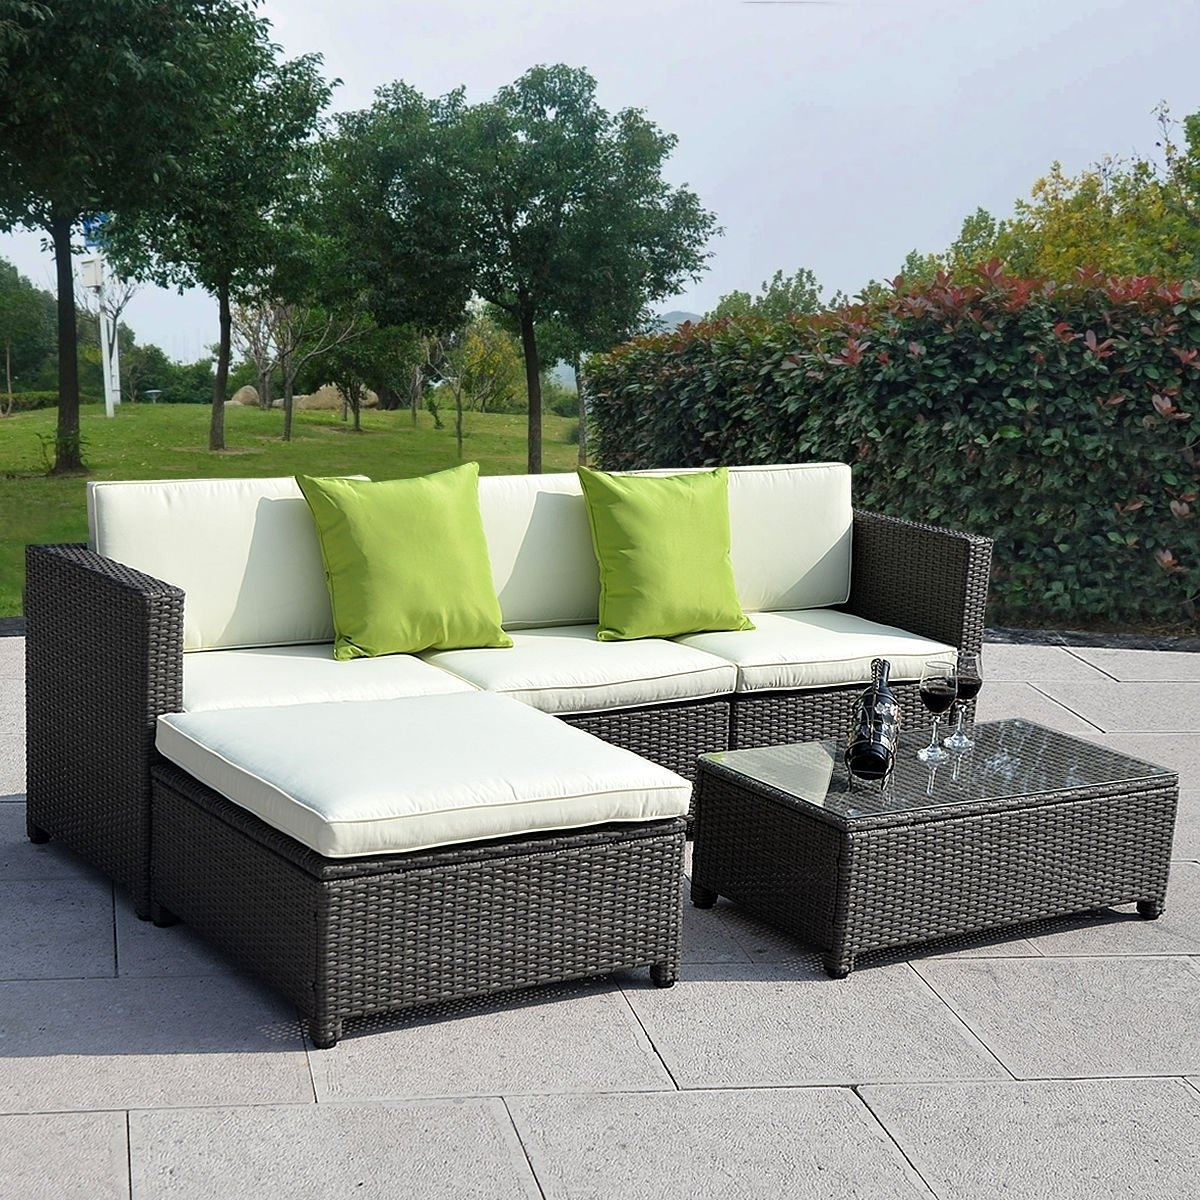 Small Patio Conversation Sets For Current Conversation Area Furniture Outdoor Conversation Sets Sirio Patio (View 12 of 20)